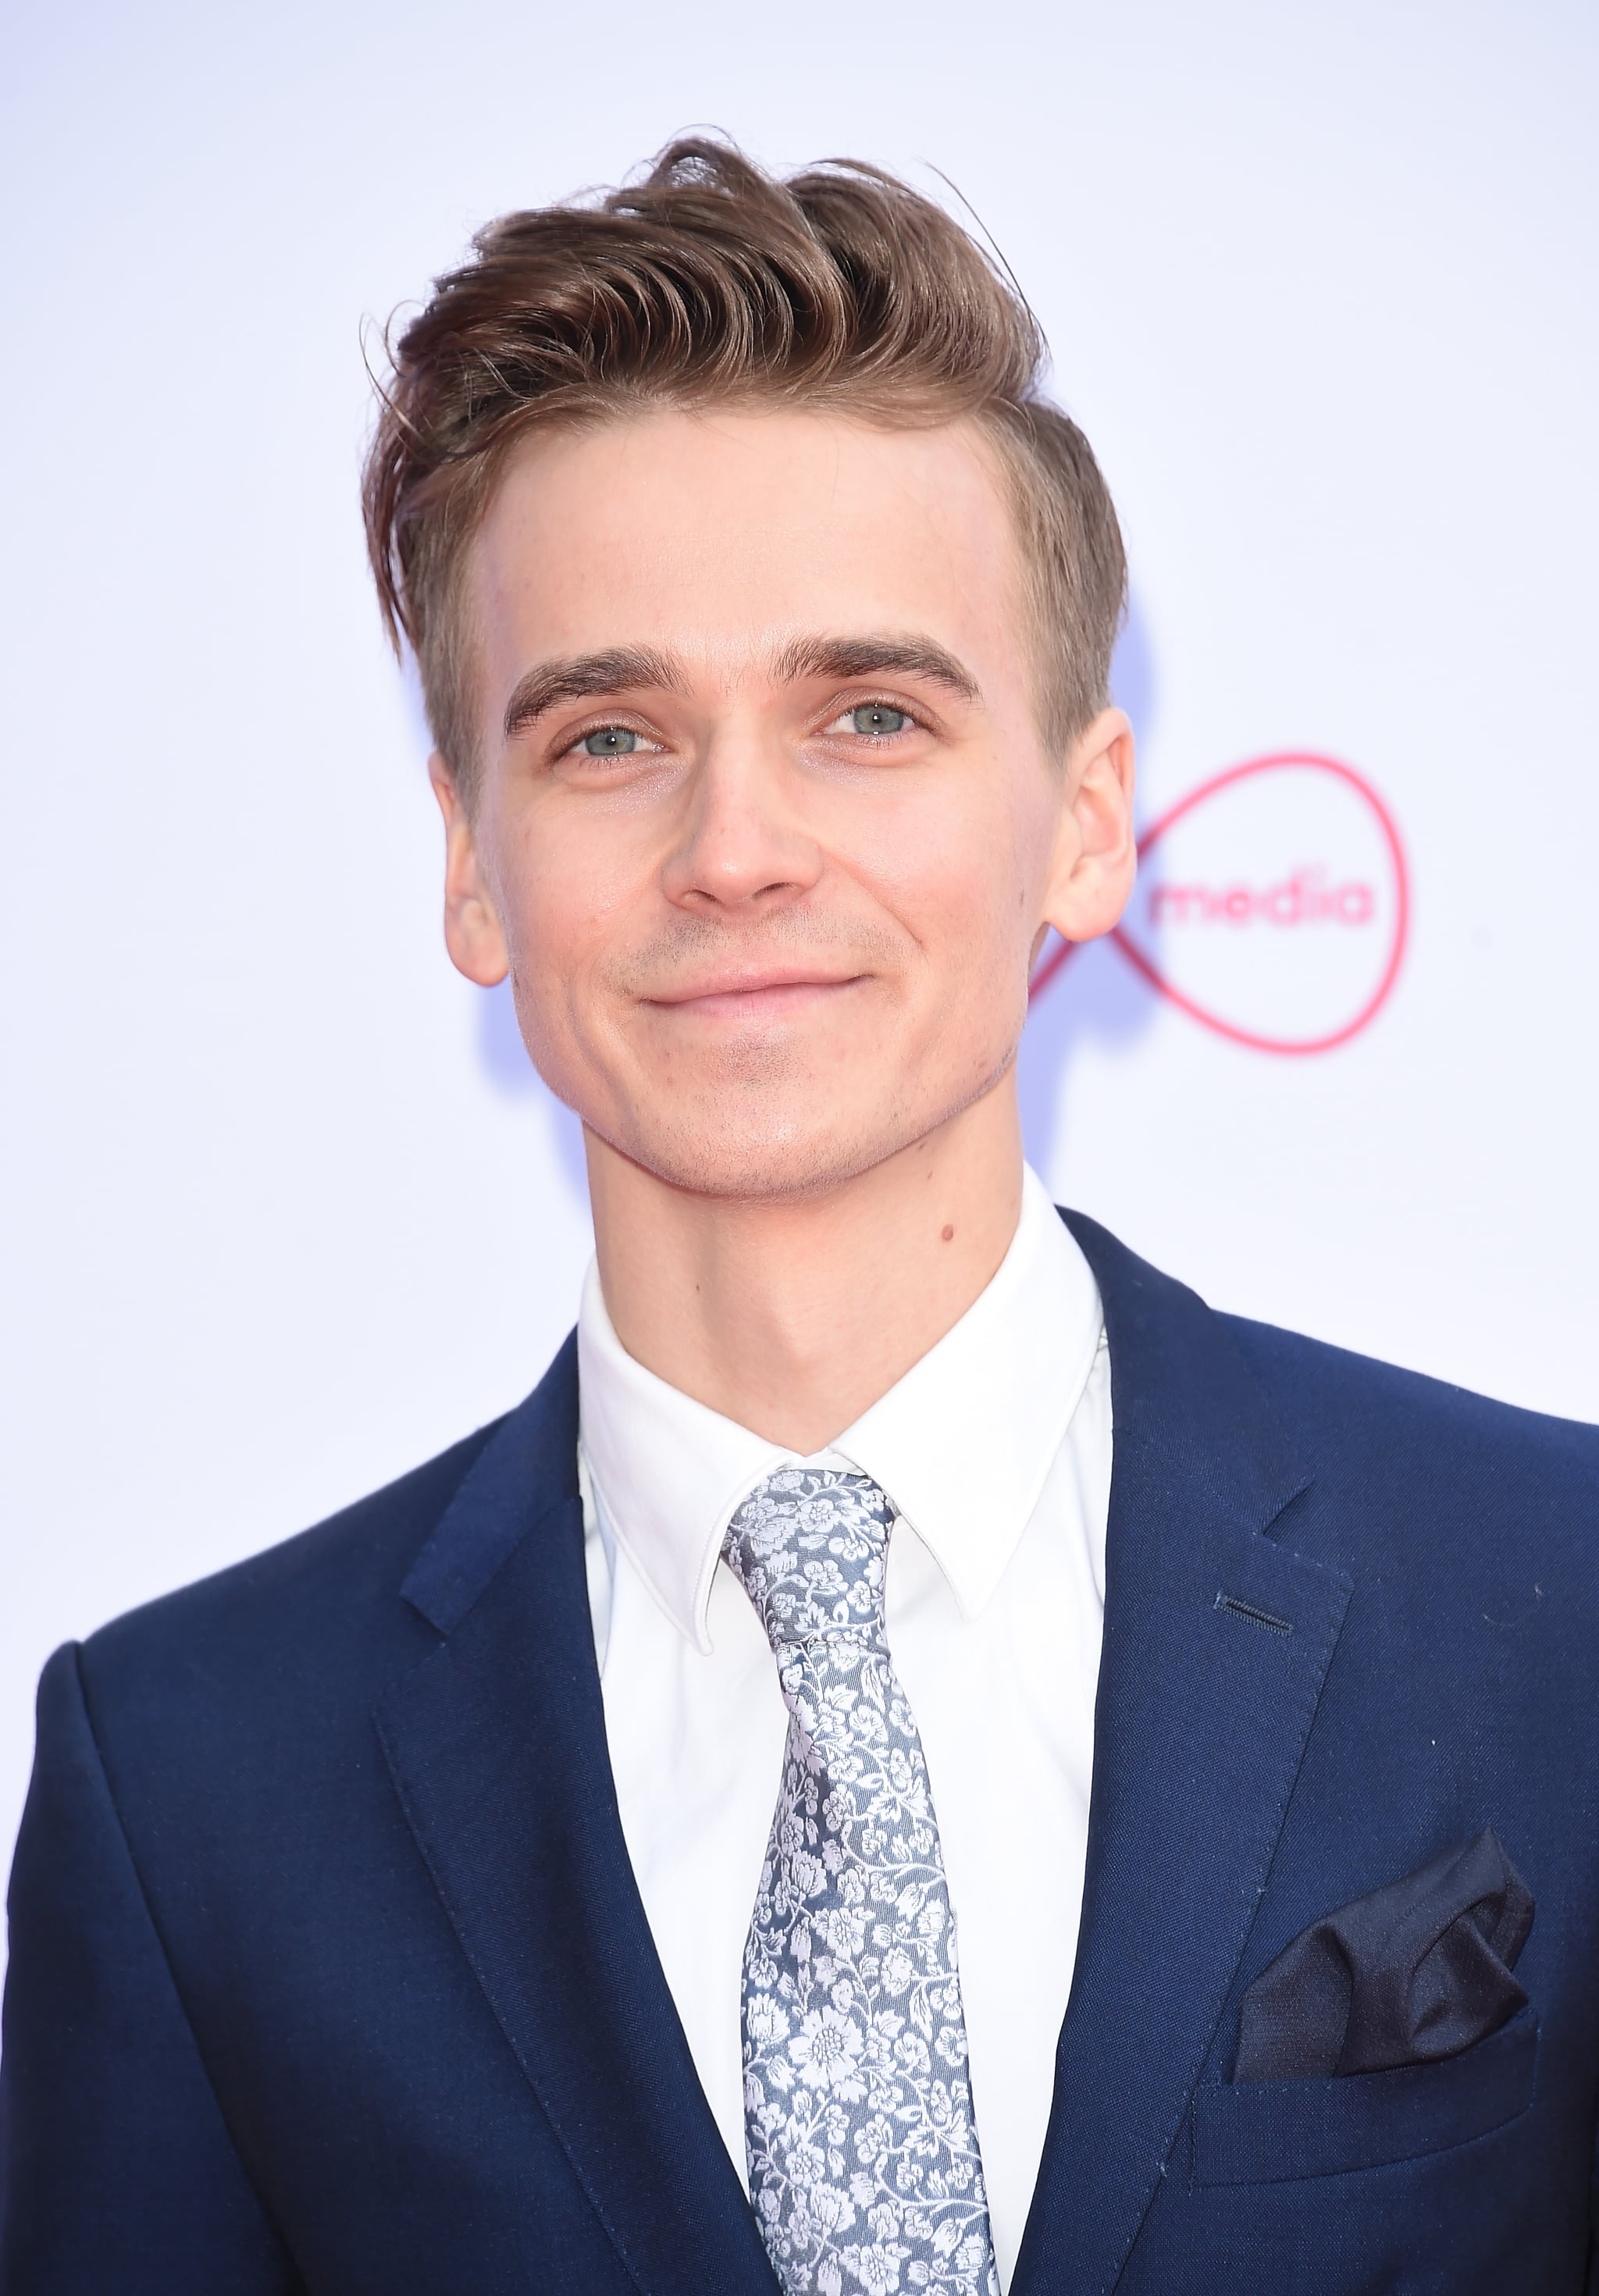 LONDON, ENGLAND - MAY 12:  Joe Sugg attends the Virgin Media British Academy Television Awards at The Royal Festival Hall on May 12, 2019 in London, England.  (Photo by David M. Benett/Dave Benett/Getty Images)